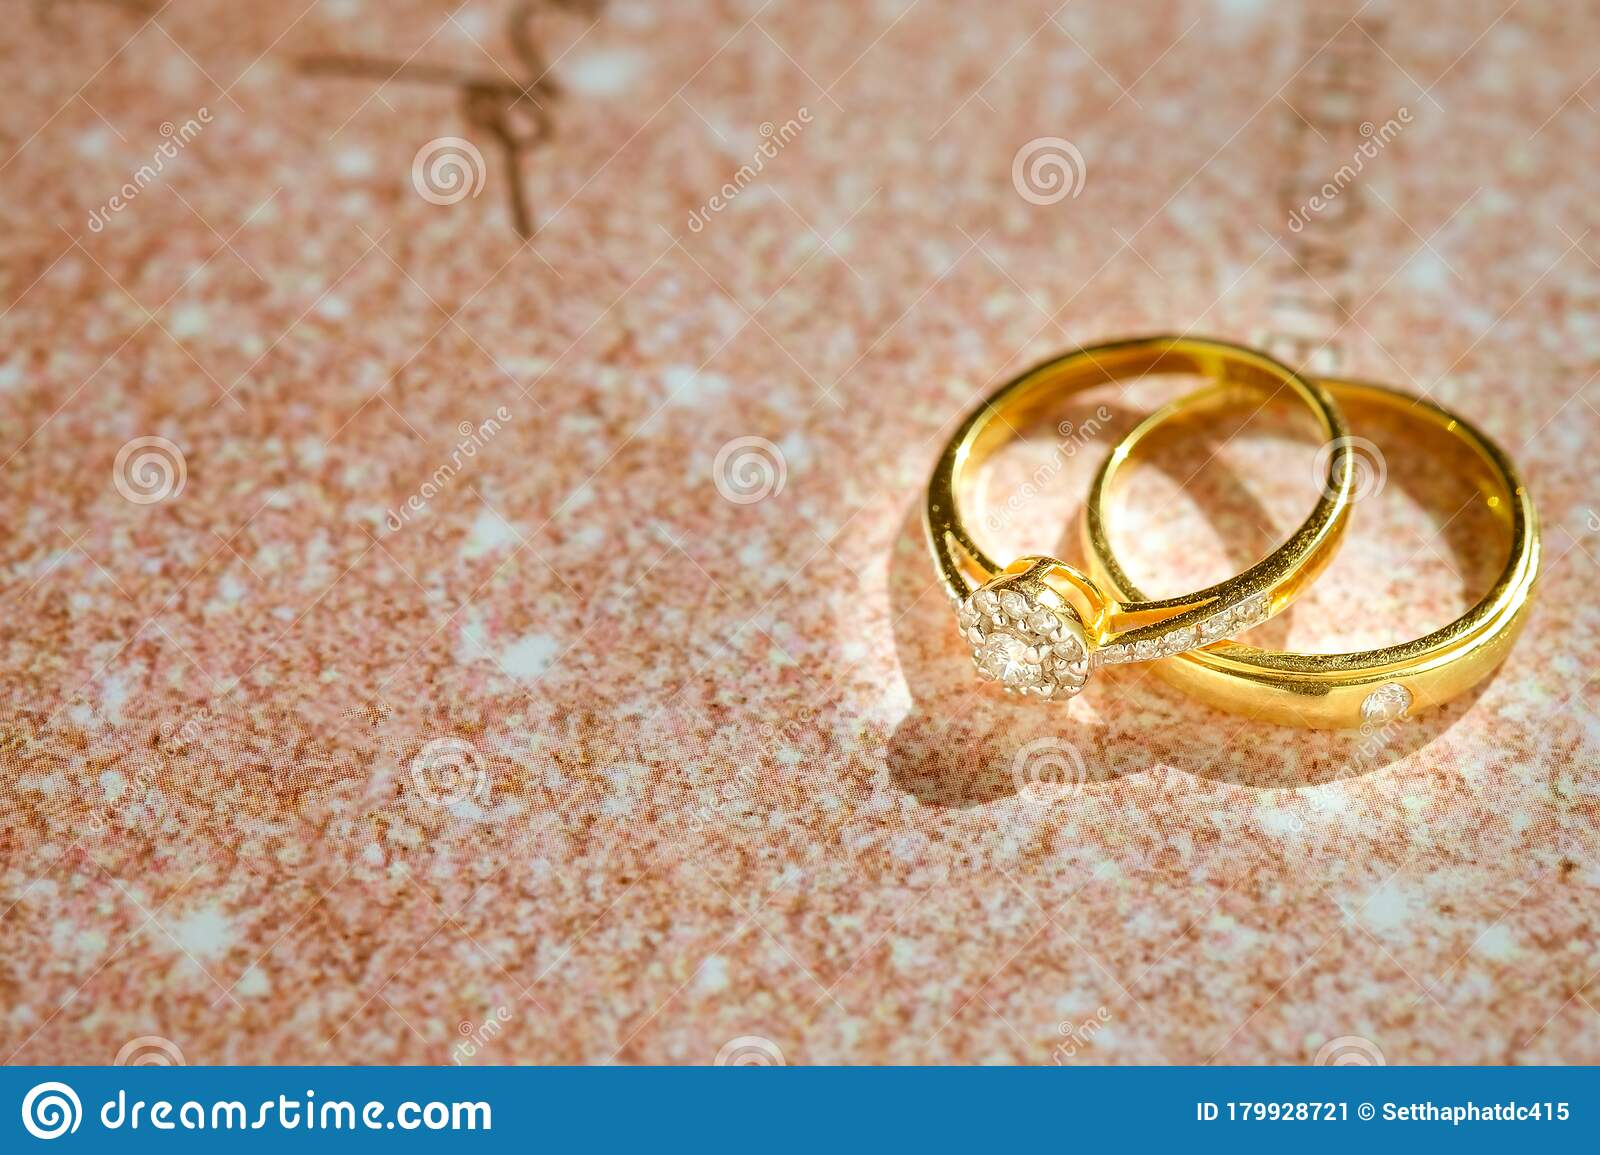 Close Up Of Gold Wedding Rings Or Engagement Rings On Wedding Invitation Card Background Stock Image Image Of Celebration Card 179928721